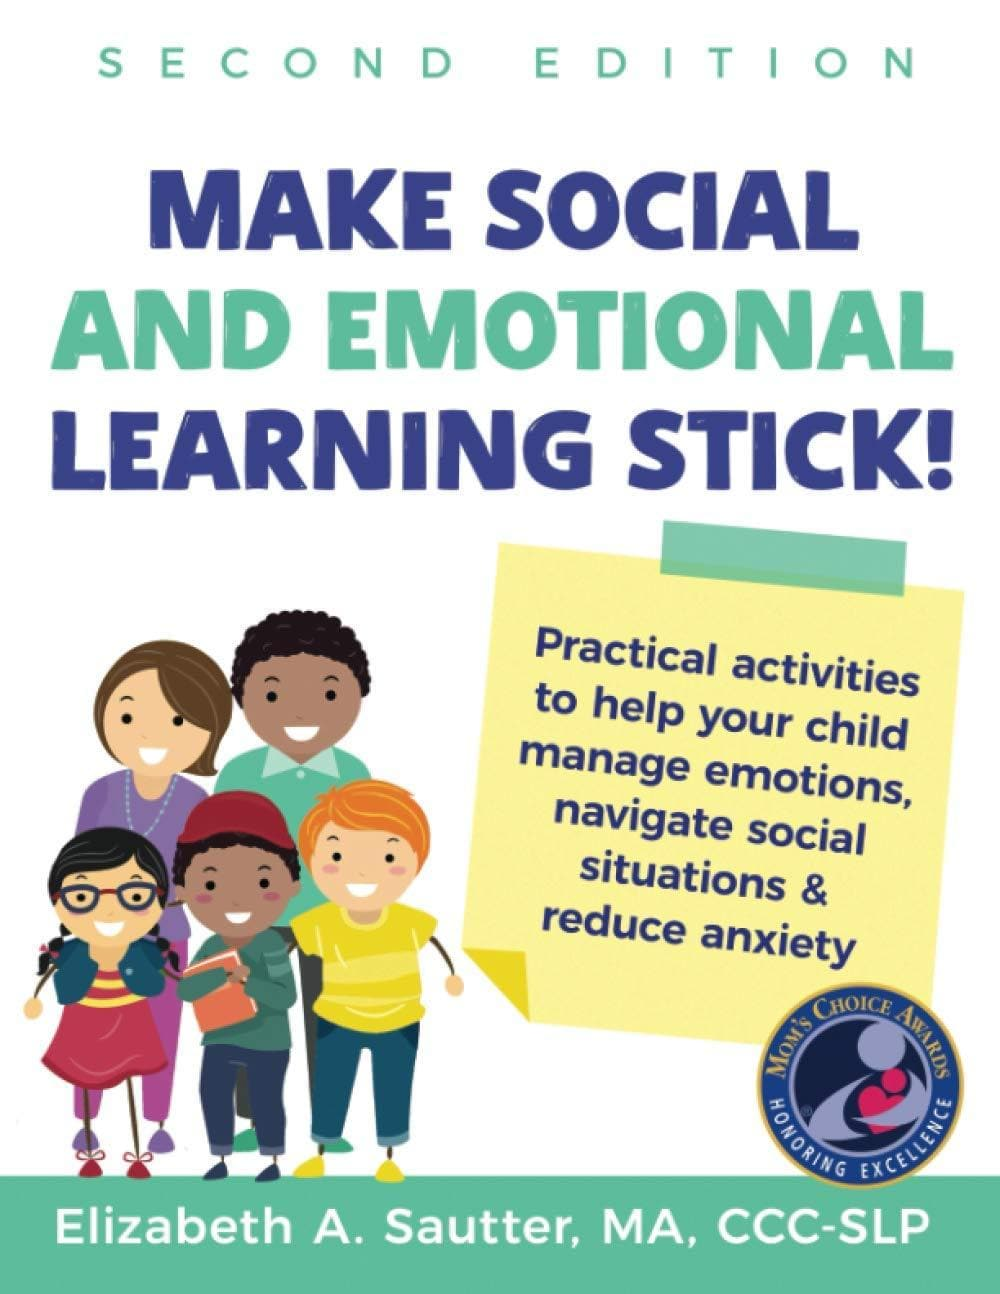 Make Social and Emotional Learning Stick! 2nd Edition - AAPC Publishing